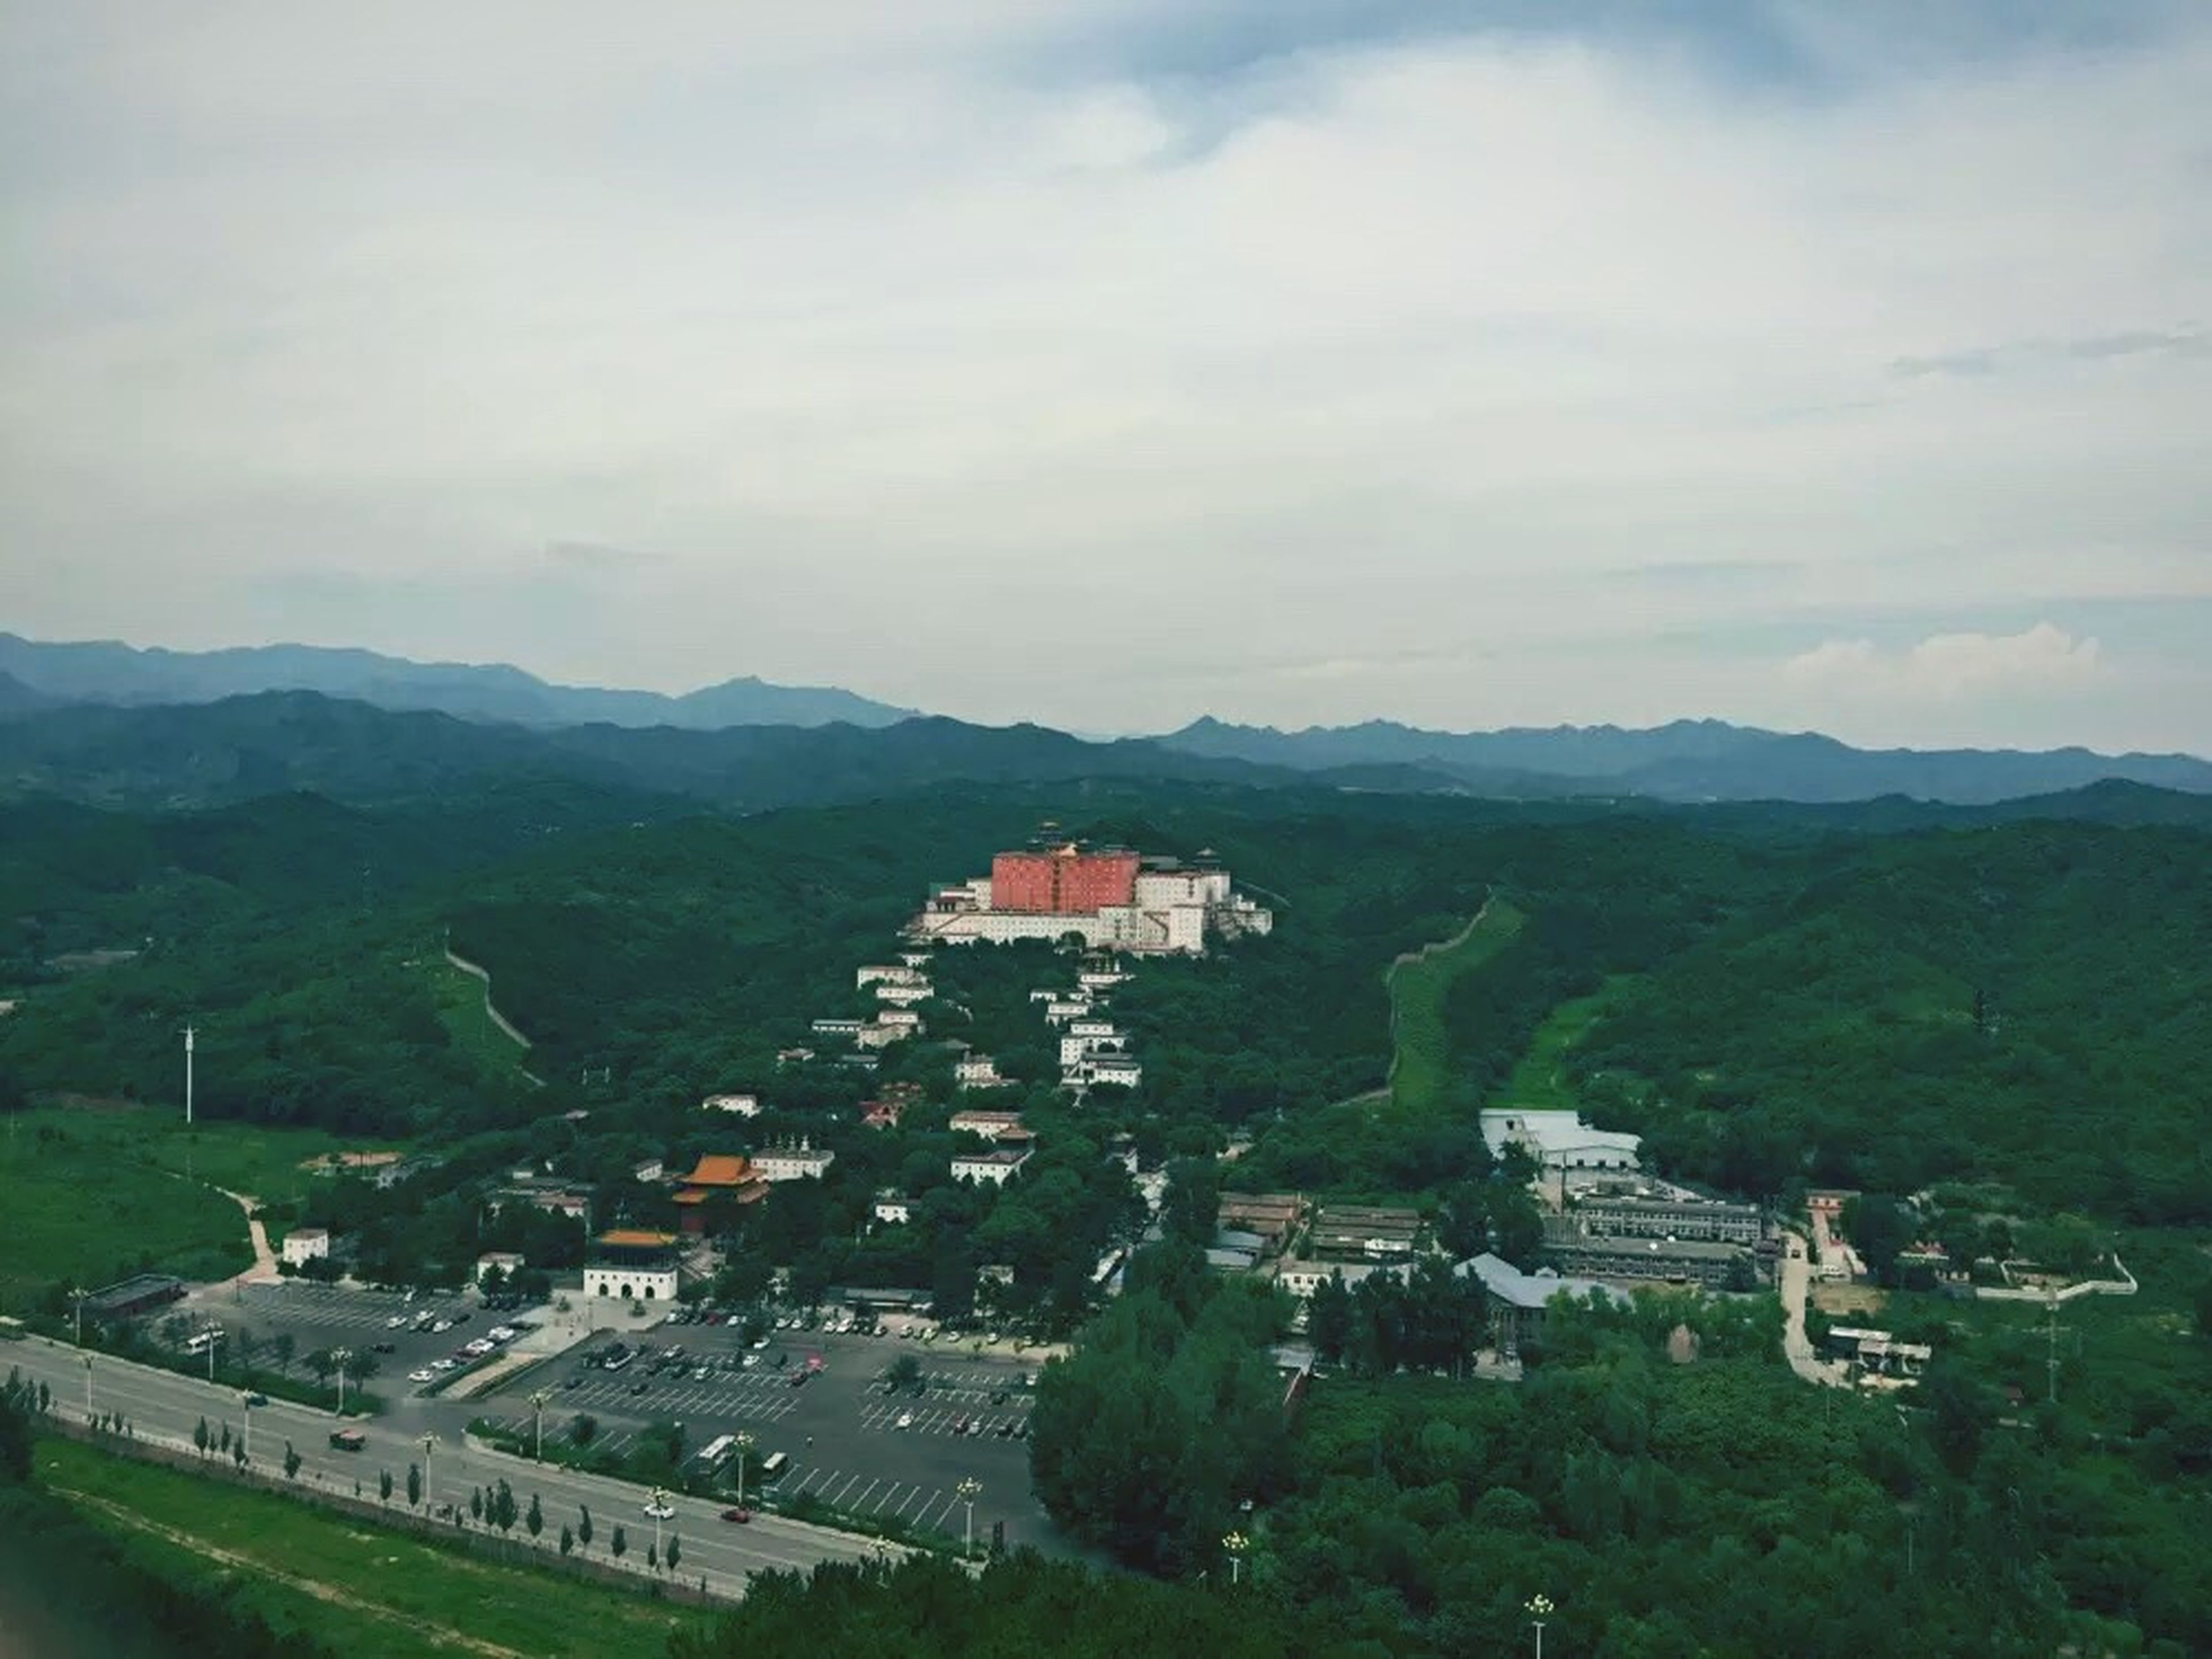 architecture, mountain, built structure, building exterior, house, sky, mountain range, high angle view, tree, landscape, residential structure, cloud - sky, town, hill, residential building, townscape, green color, scenics, cloud, day